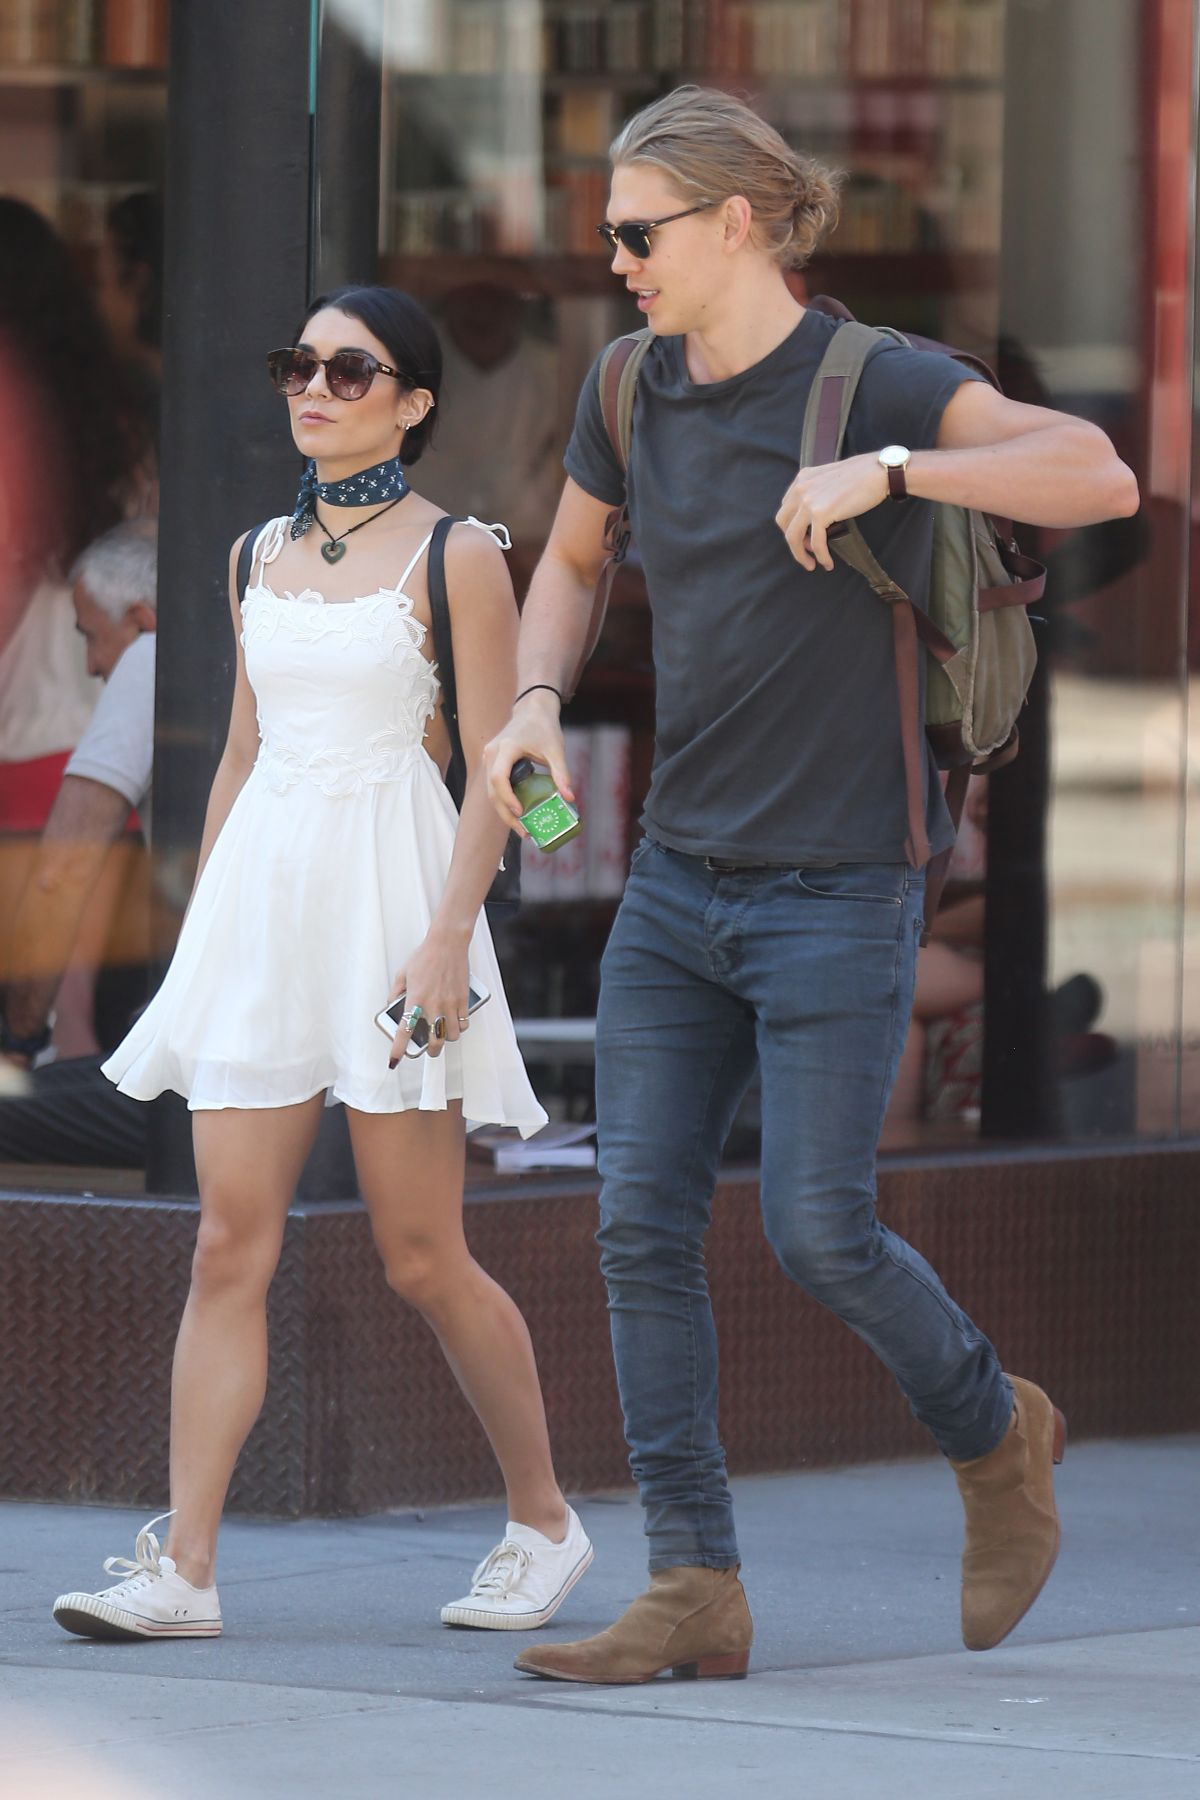 Nothing Vanessa hudgens and austin butler words